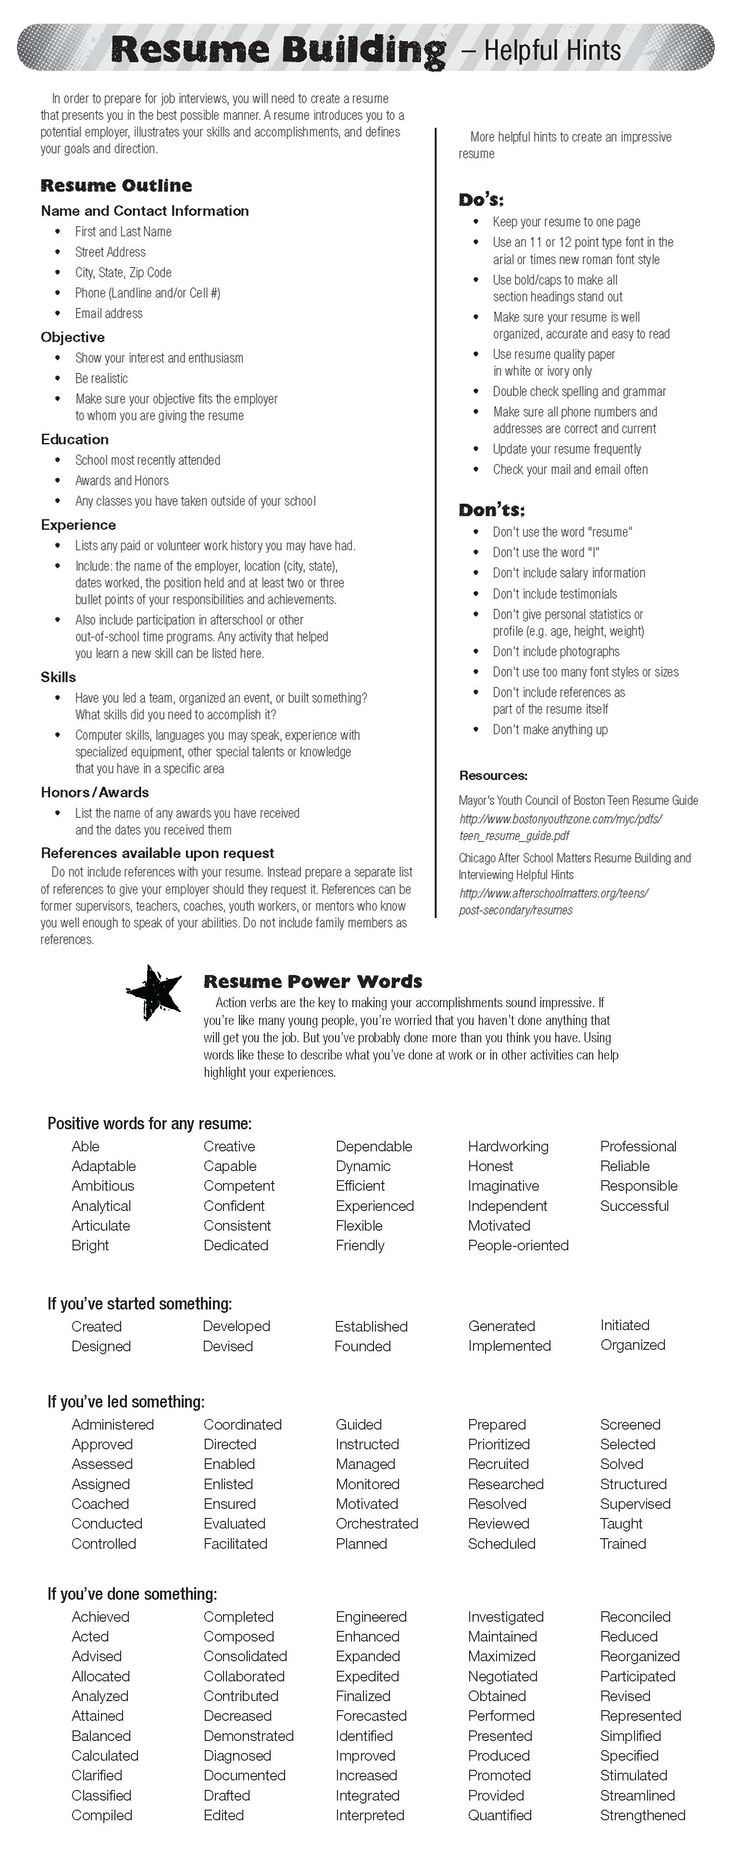 Opposenewapstandardsus  Sweet  Ideas About Resume On Pinterest  Cv Format Resume  With Handsome Check Out Todays Resume Building Tips Resume Resumepowerwords With Breathtaking Vita Resume Also Resume Skill Examples In Addition Professional Resume Writing And Resume Engine As Well As Write My Resume Additionally Cover Letter Vs Resume From Pinterestcom With Opposenewapstandardsus  Handsome  Ideas About Resume On Pinterest  Cv Format Resume  With Breathtaking Check Out Todays Resume Building Tips Resume Resumepowerwords And Sweet Vita Resume Also Resume Skill Examples In Addition Professional Resume Writing From Pinterestcom